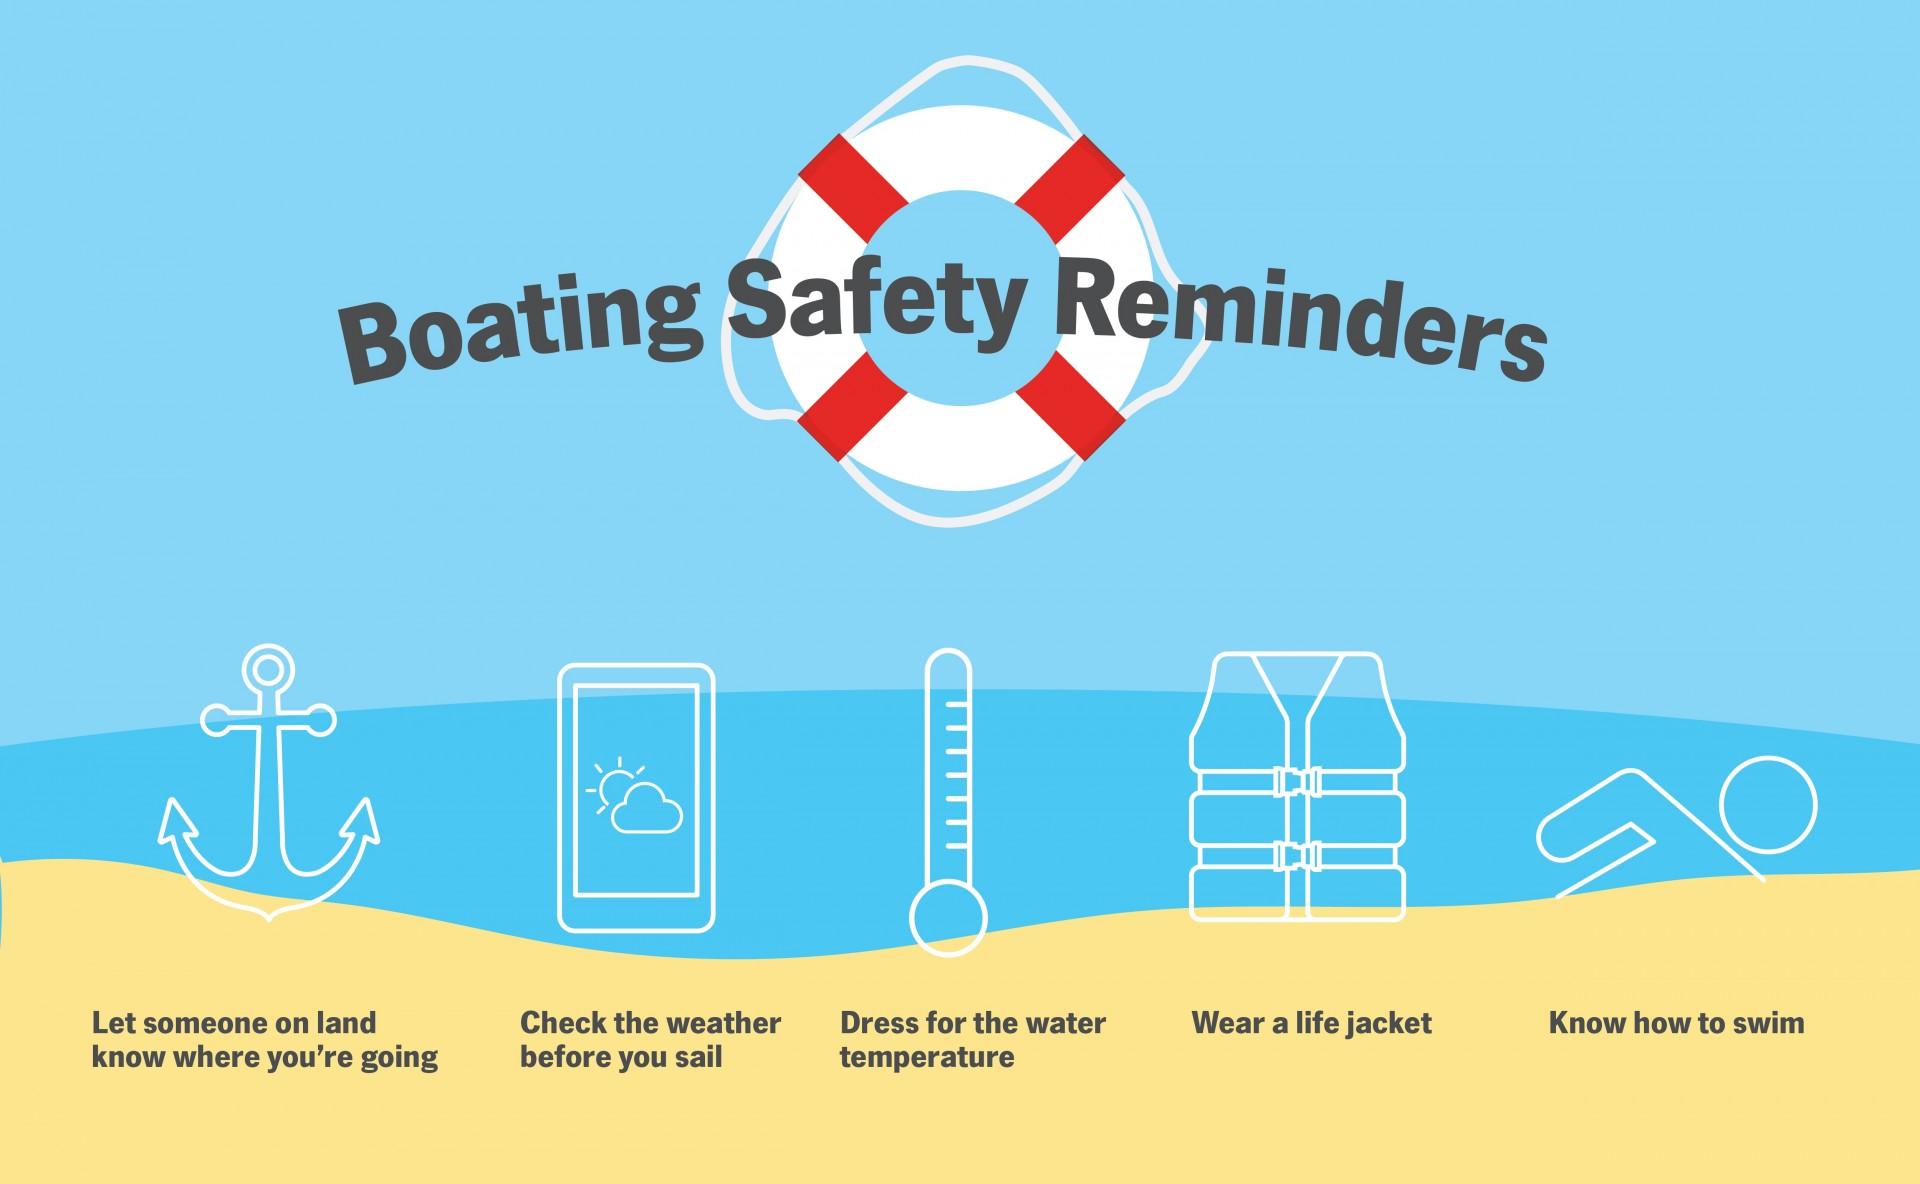 Boating Safety Reminders